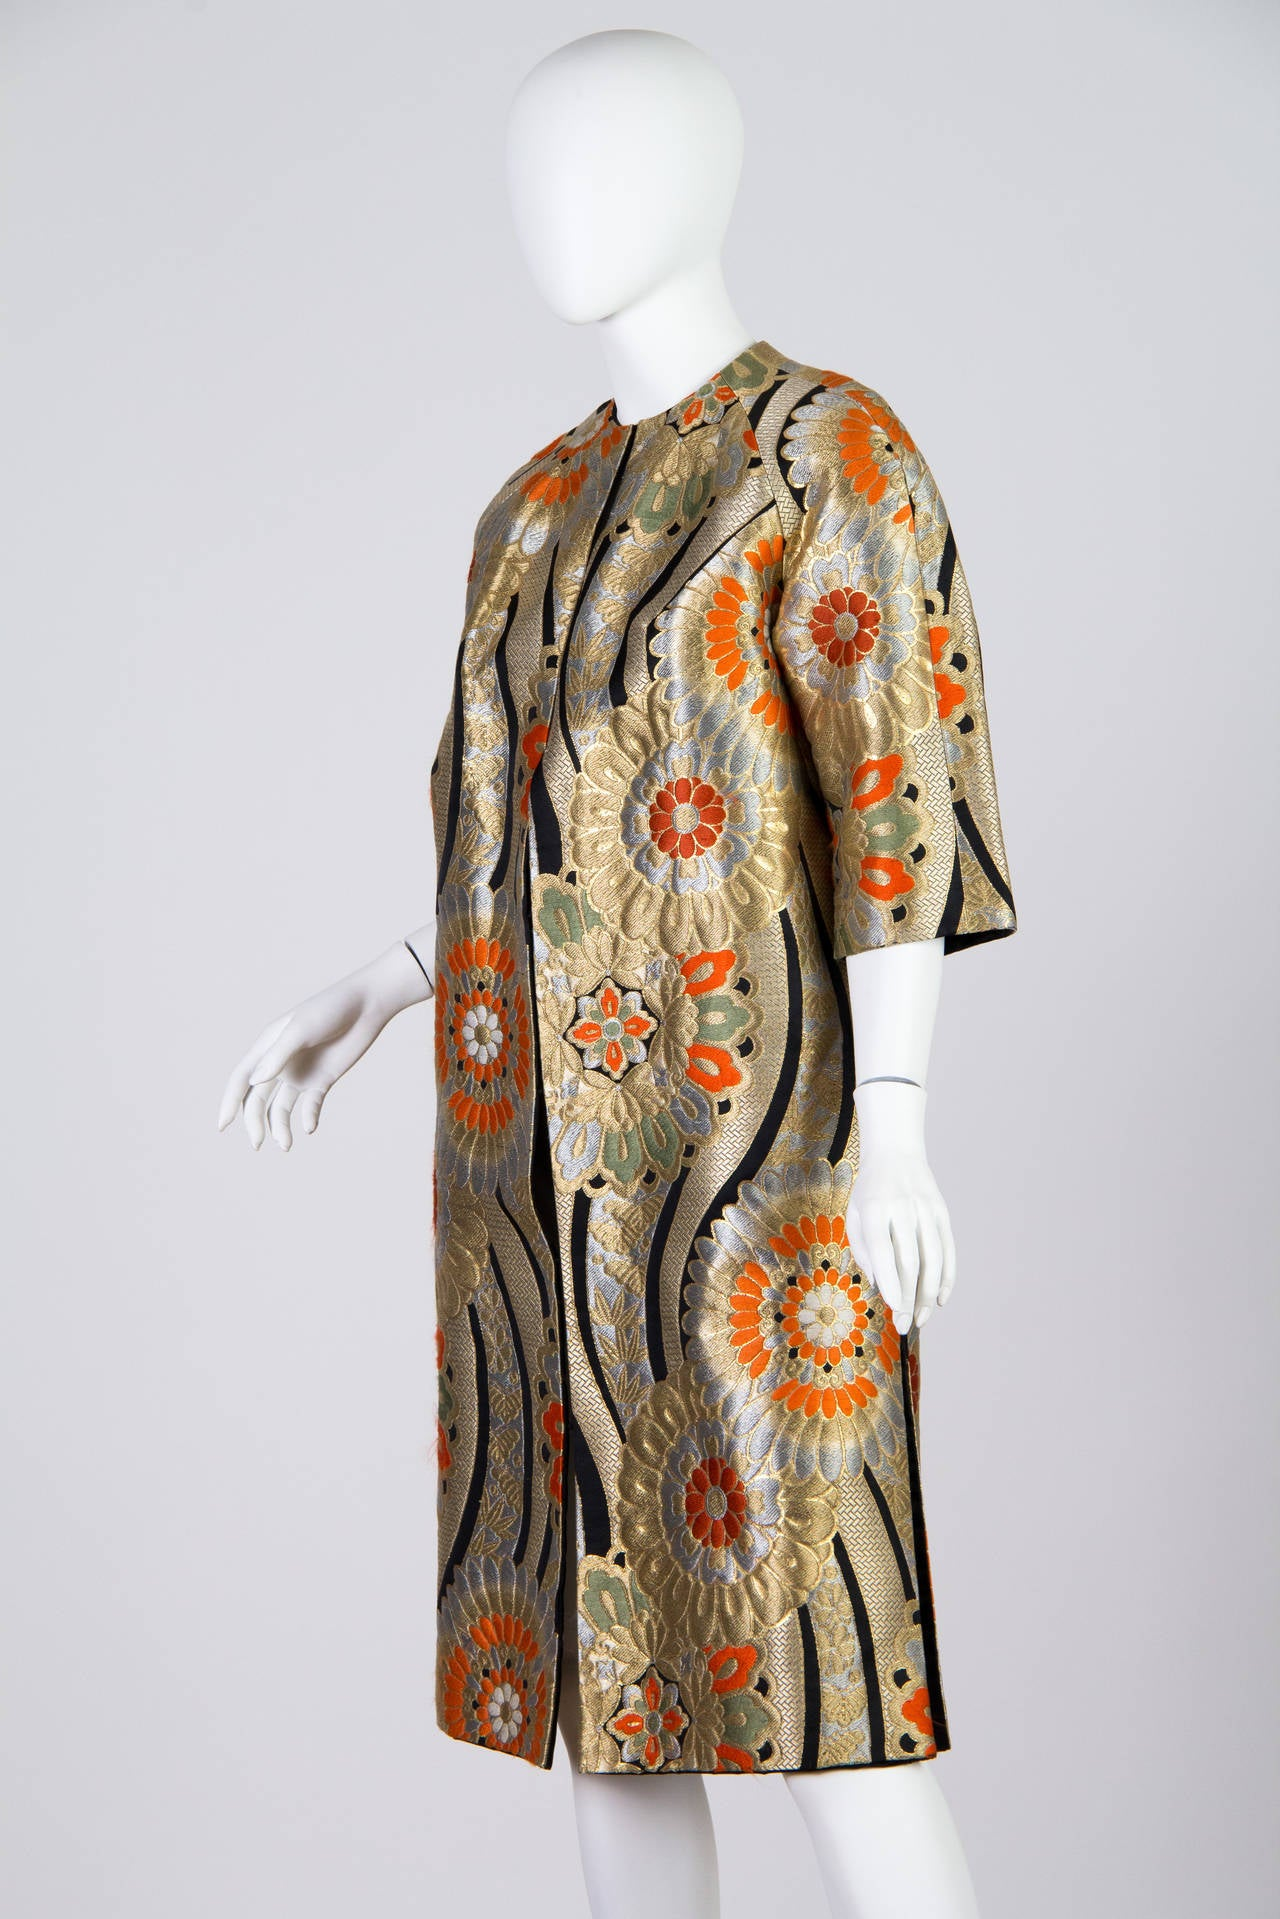 1960s Coat Made from Gold Shōwa Era Japanese Obi Fabric 3